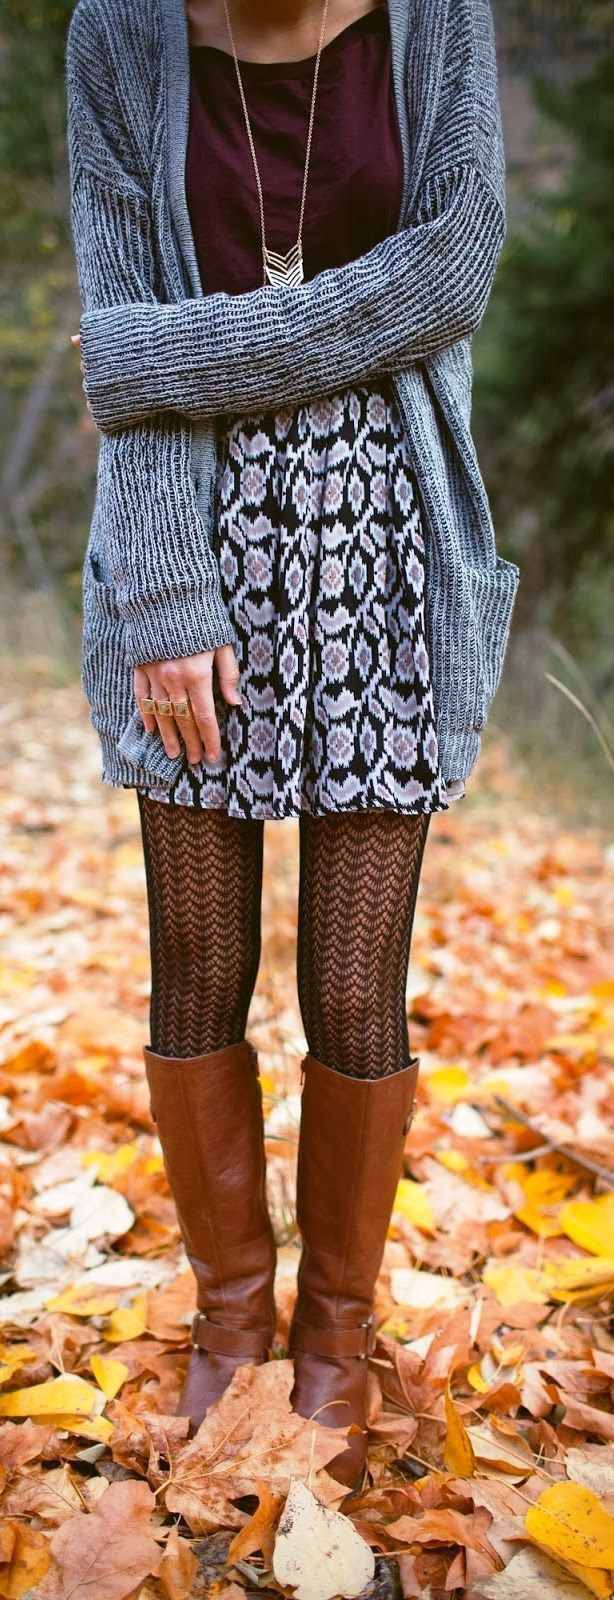 Things I need more of in my life: Patterned Tights and Printed Skirts. | Love this outfit. Patterned tights and skirt with long cardigan